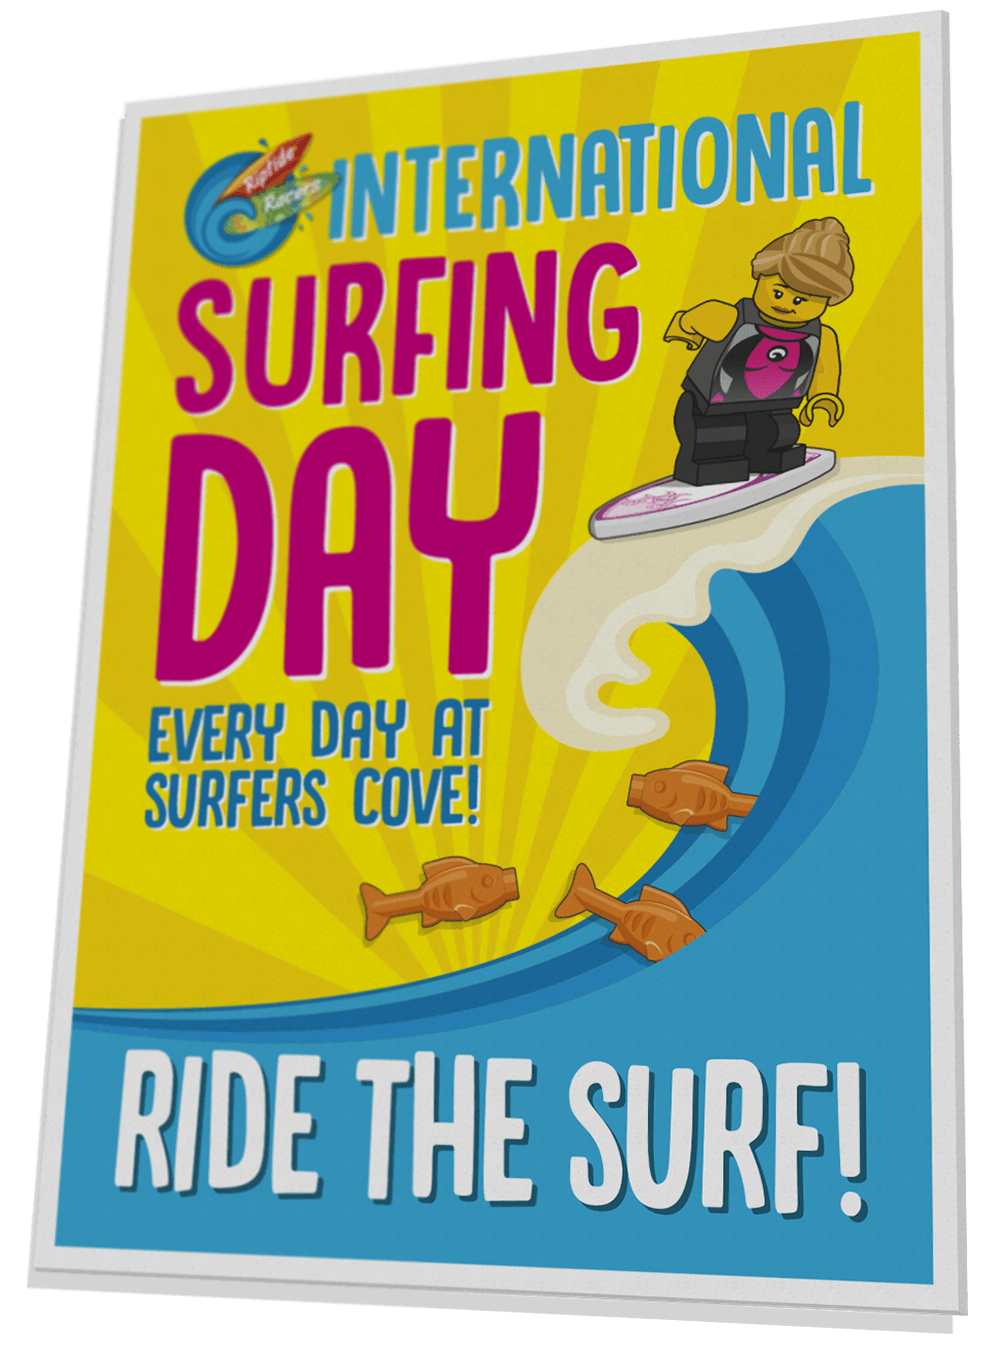 Riptide Racers surfing day poster for Surfers' Cove